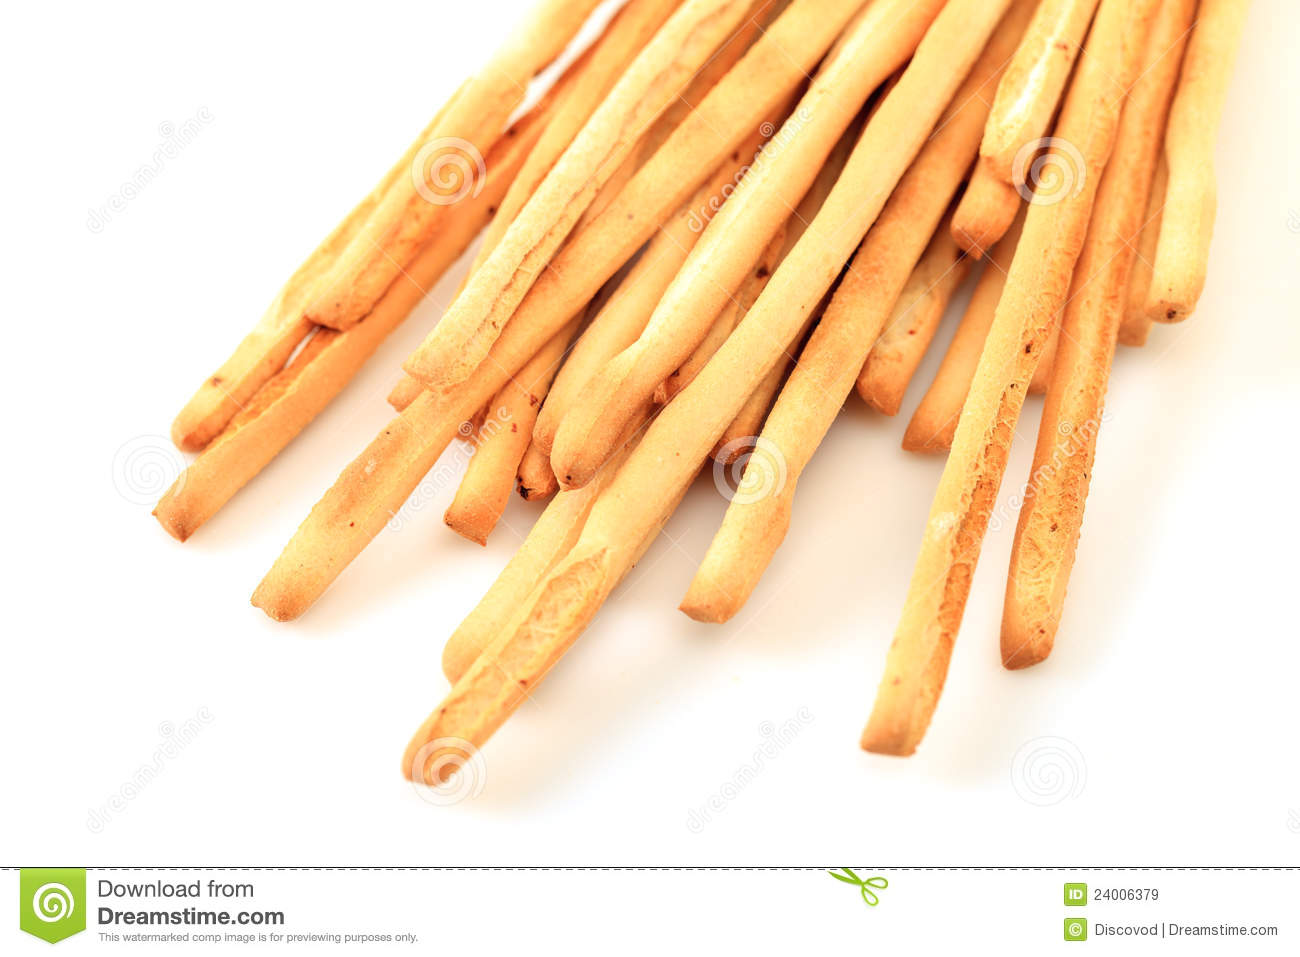 breadsticks royalty free stock images image 24006379 cheese pizza clipart images plain cheese pizza clipart